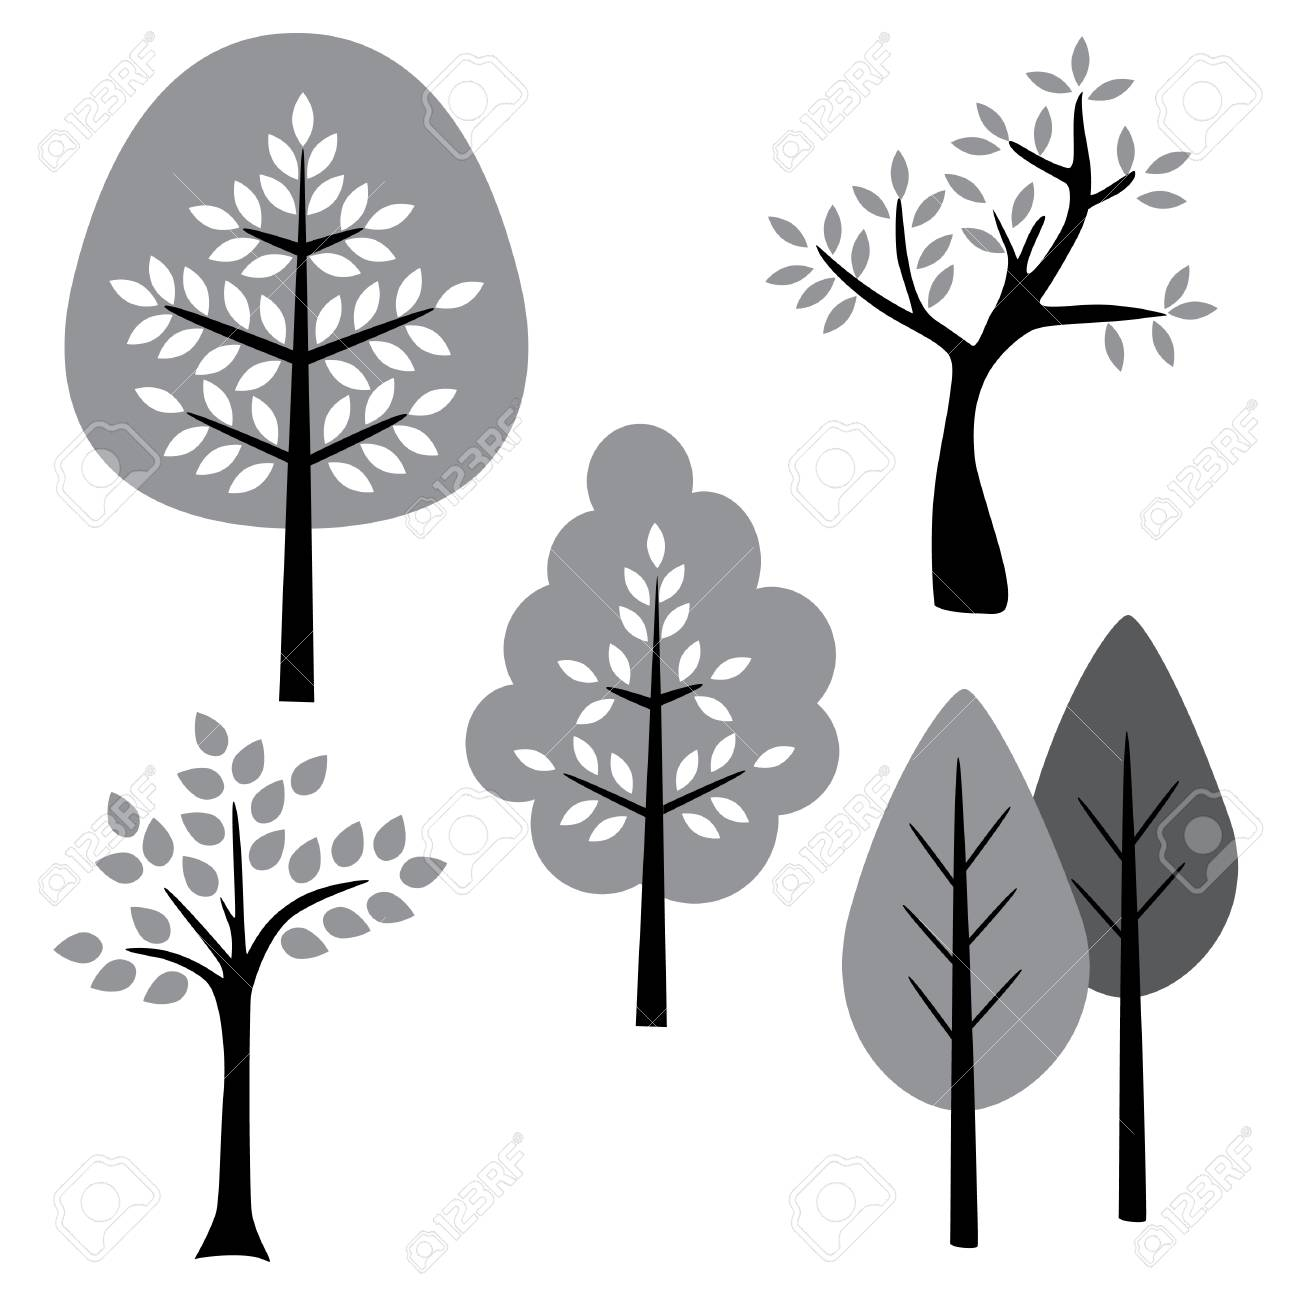 Simple Black White And Gray Vector Trees Clipart Royalty Free